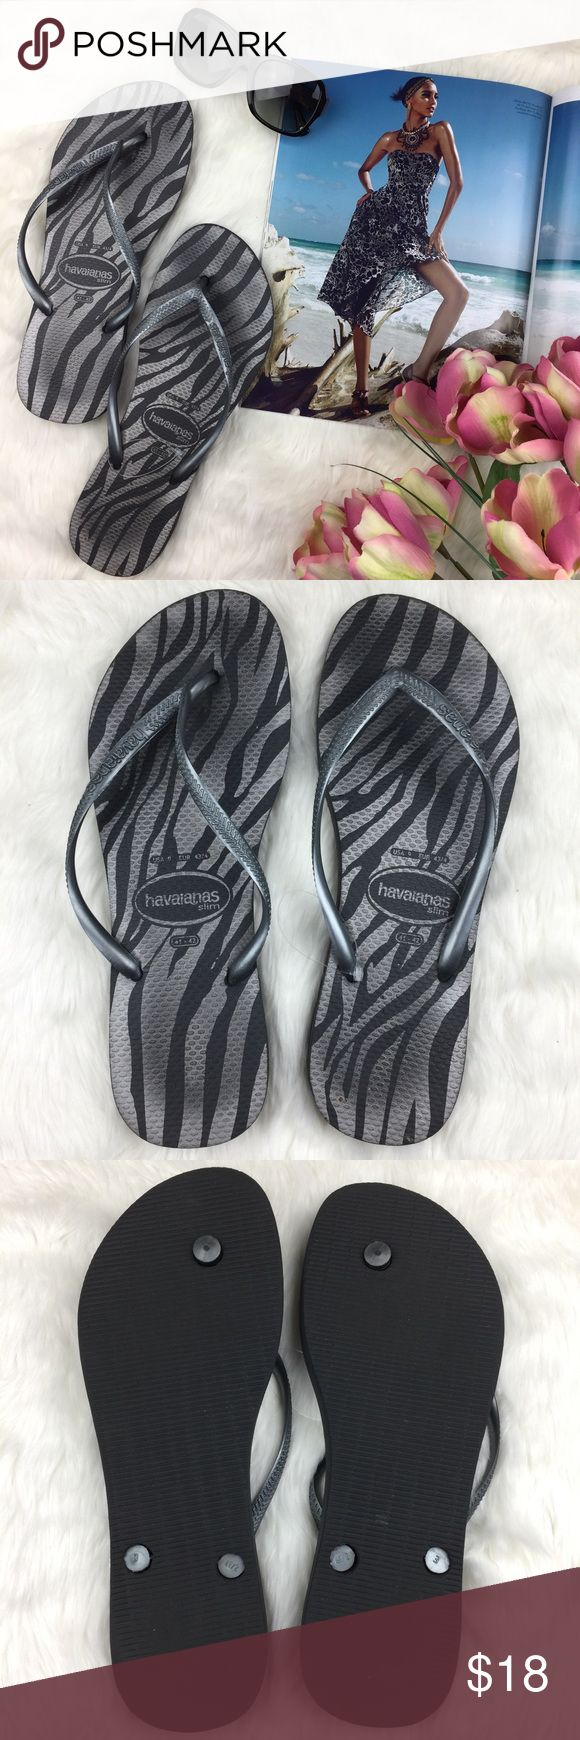 Havaianas Animal Print Flip Flops 0613💕💕the perfect summer staple piece... FLIP FLOPS!!! In great condition. Very minimal signs of wear. Sharing the love💕💕 Havaianas Shoes Slippers